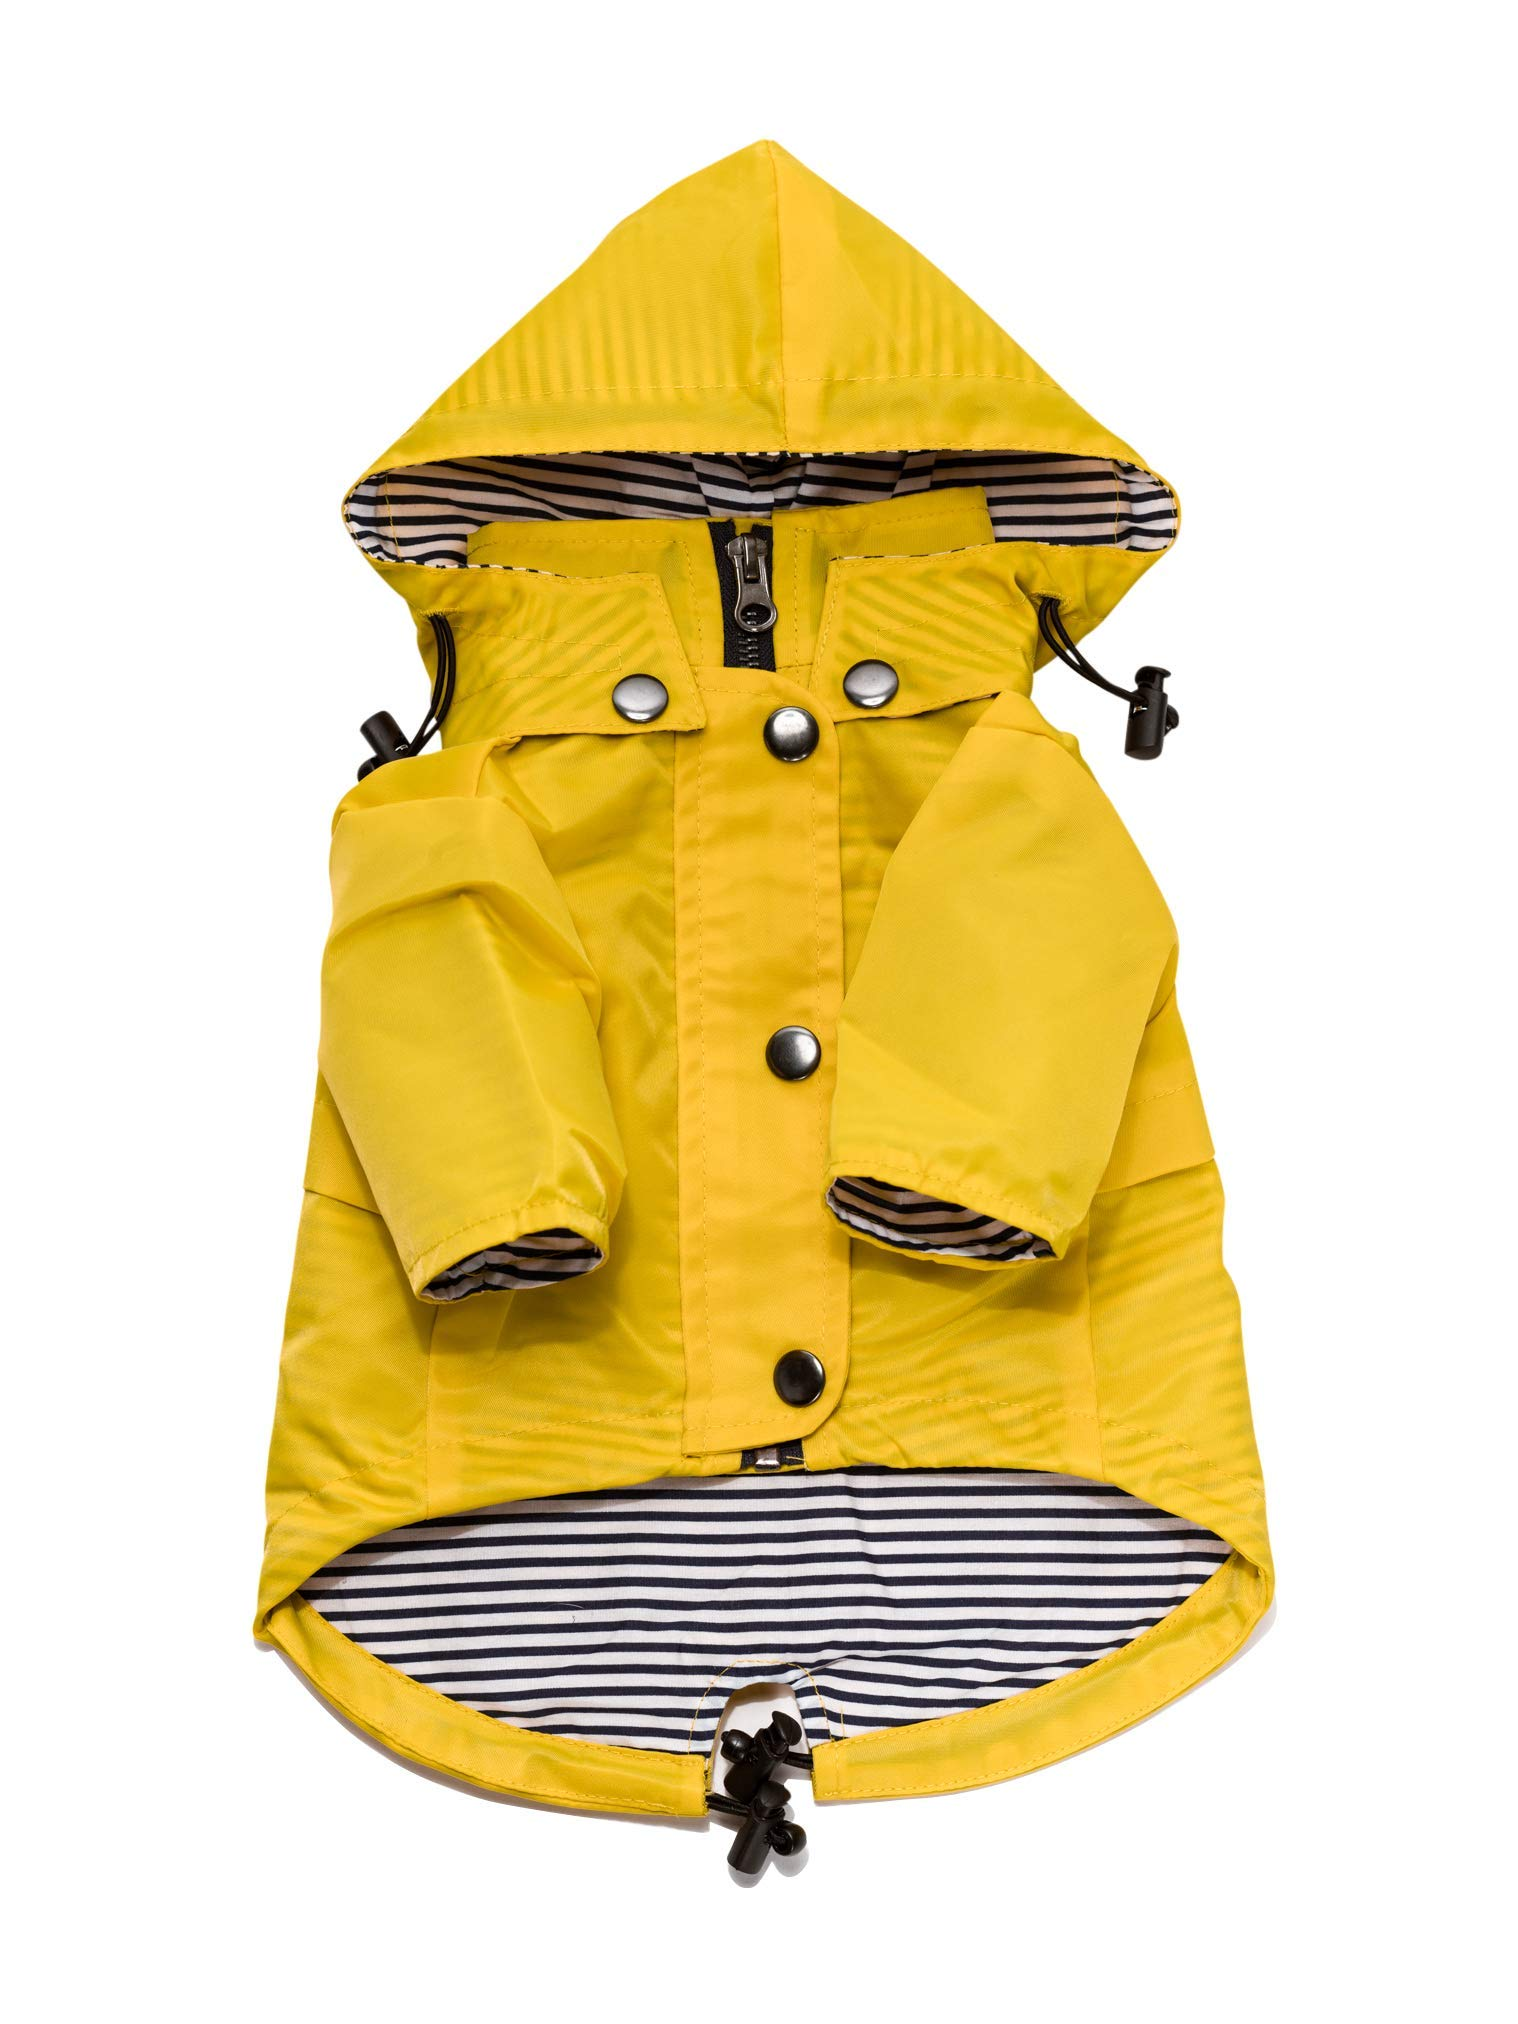 Yellow Zip Up Dog Raincoat with Reflective Buttons, Pockets, Rain/Water Resistant, Adjustable Drawstring, Removable Hood - Size XS to XXL Available - Stylish Premium Dog Raincoats by Ellie (L)